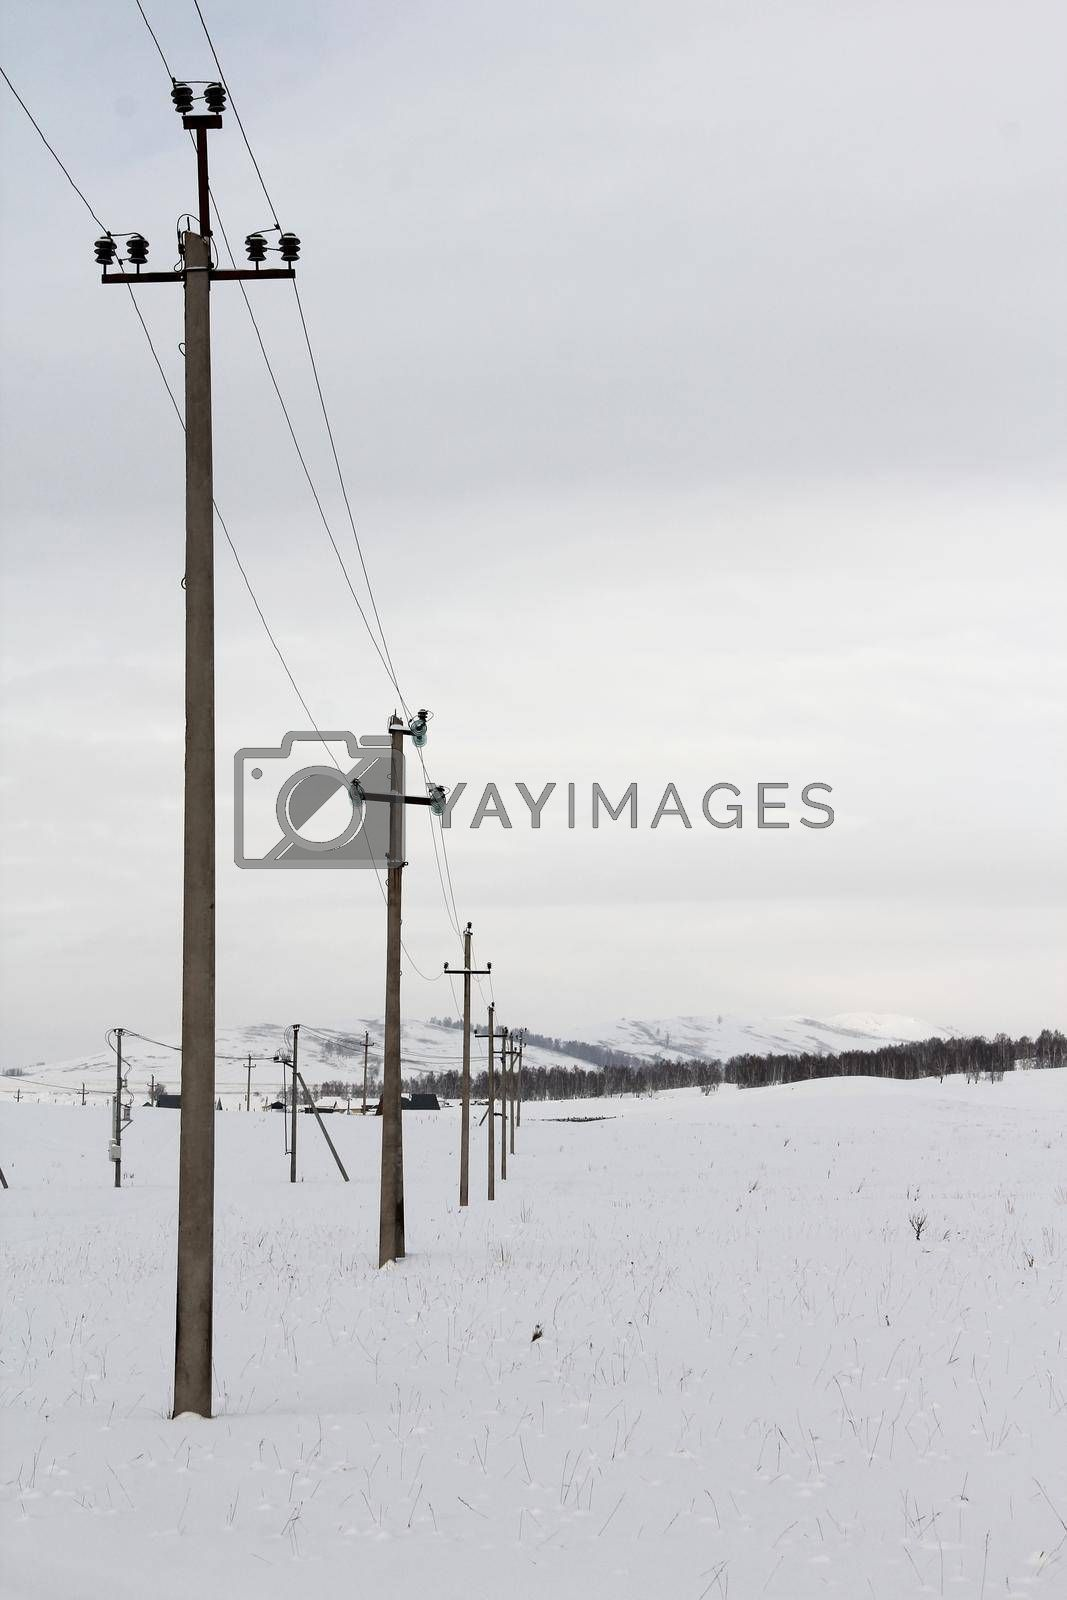 Row of wooden electric poles on empty hilly snow covered landscape. Electrical industry, power line, wiring.